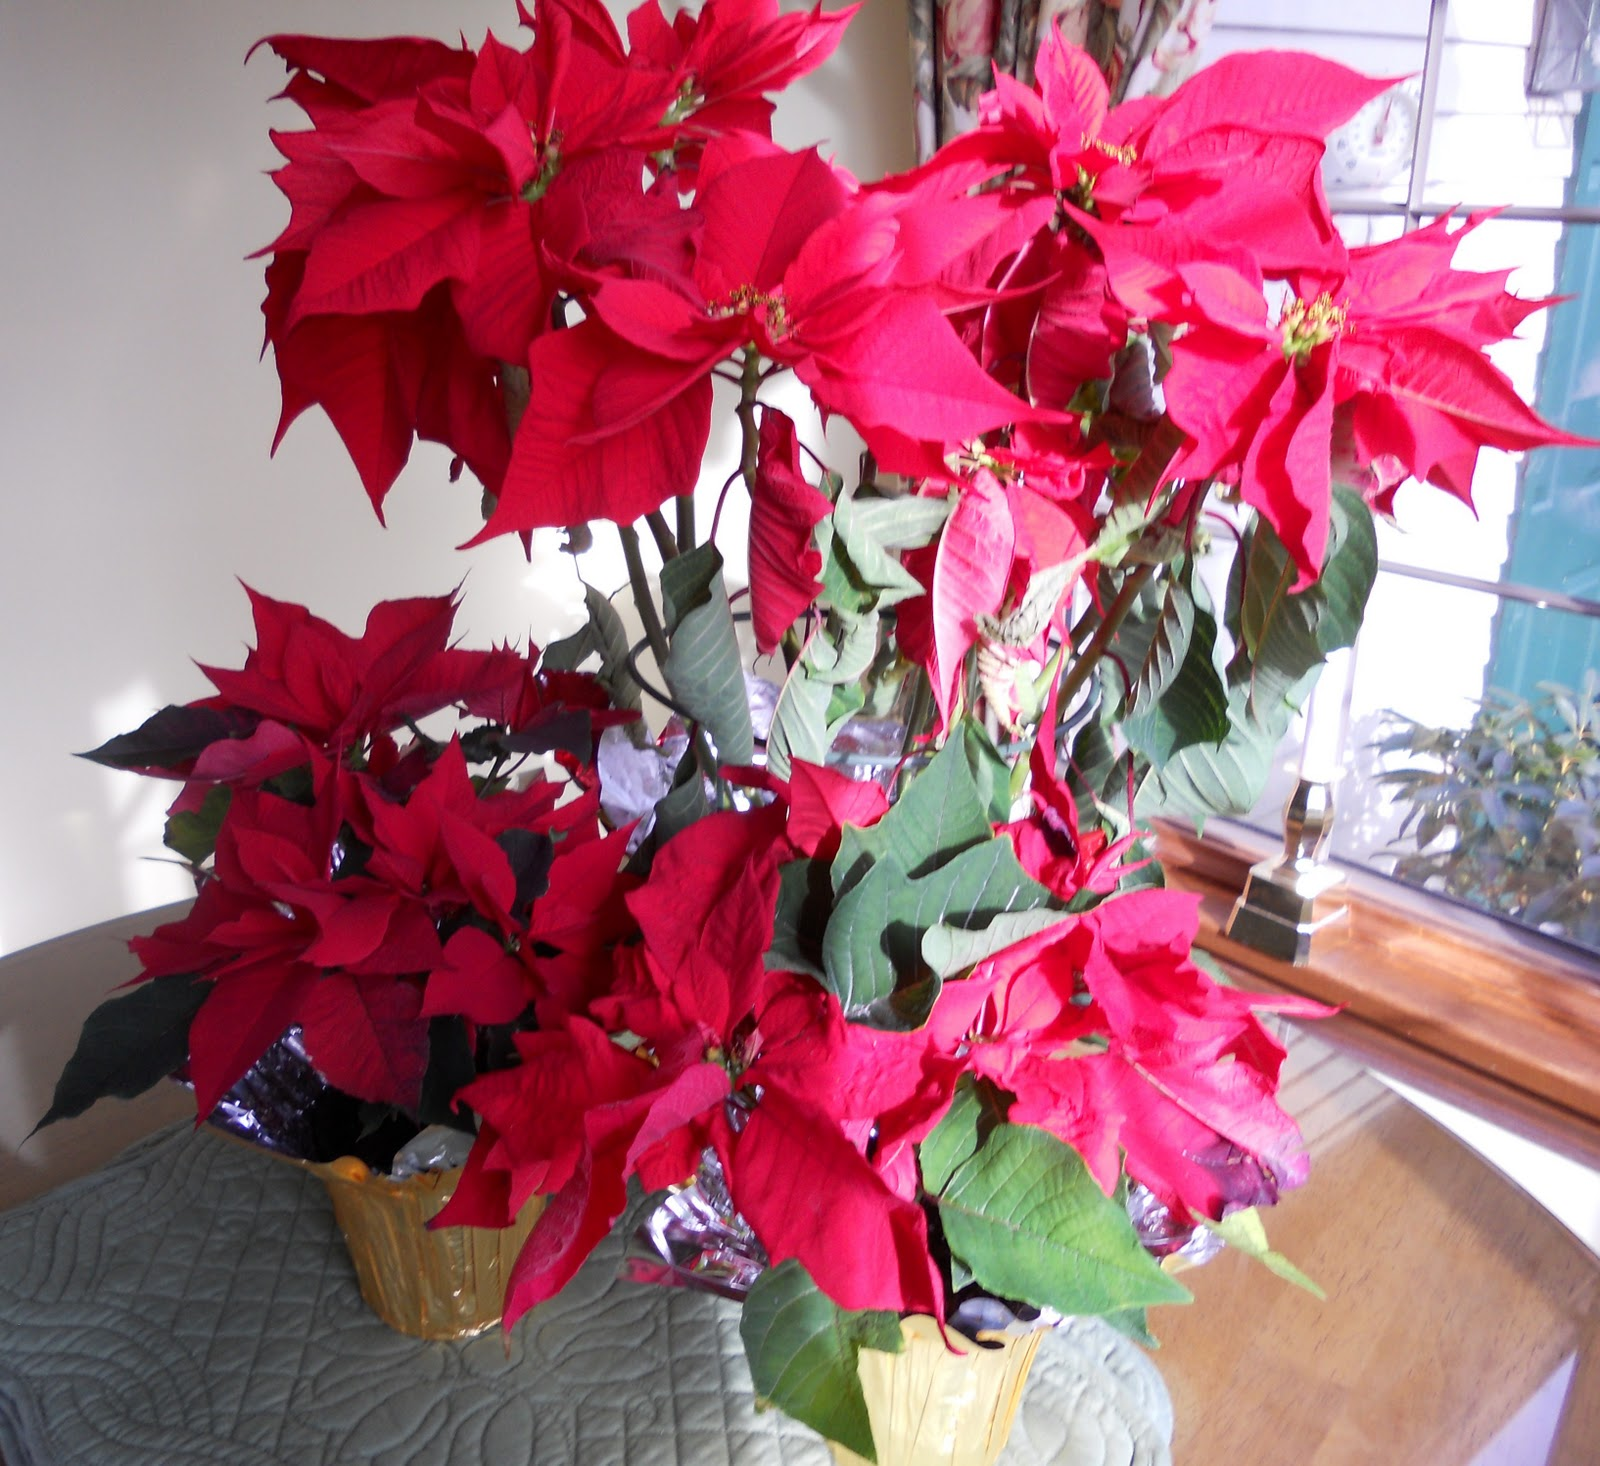 Poinsettia House Plant: What To Do With Holiday Poinsettia Plants